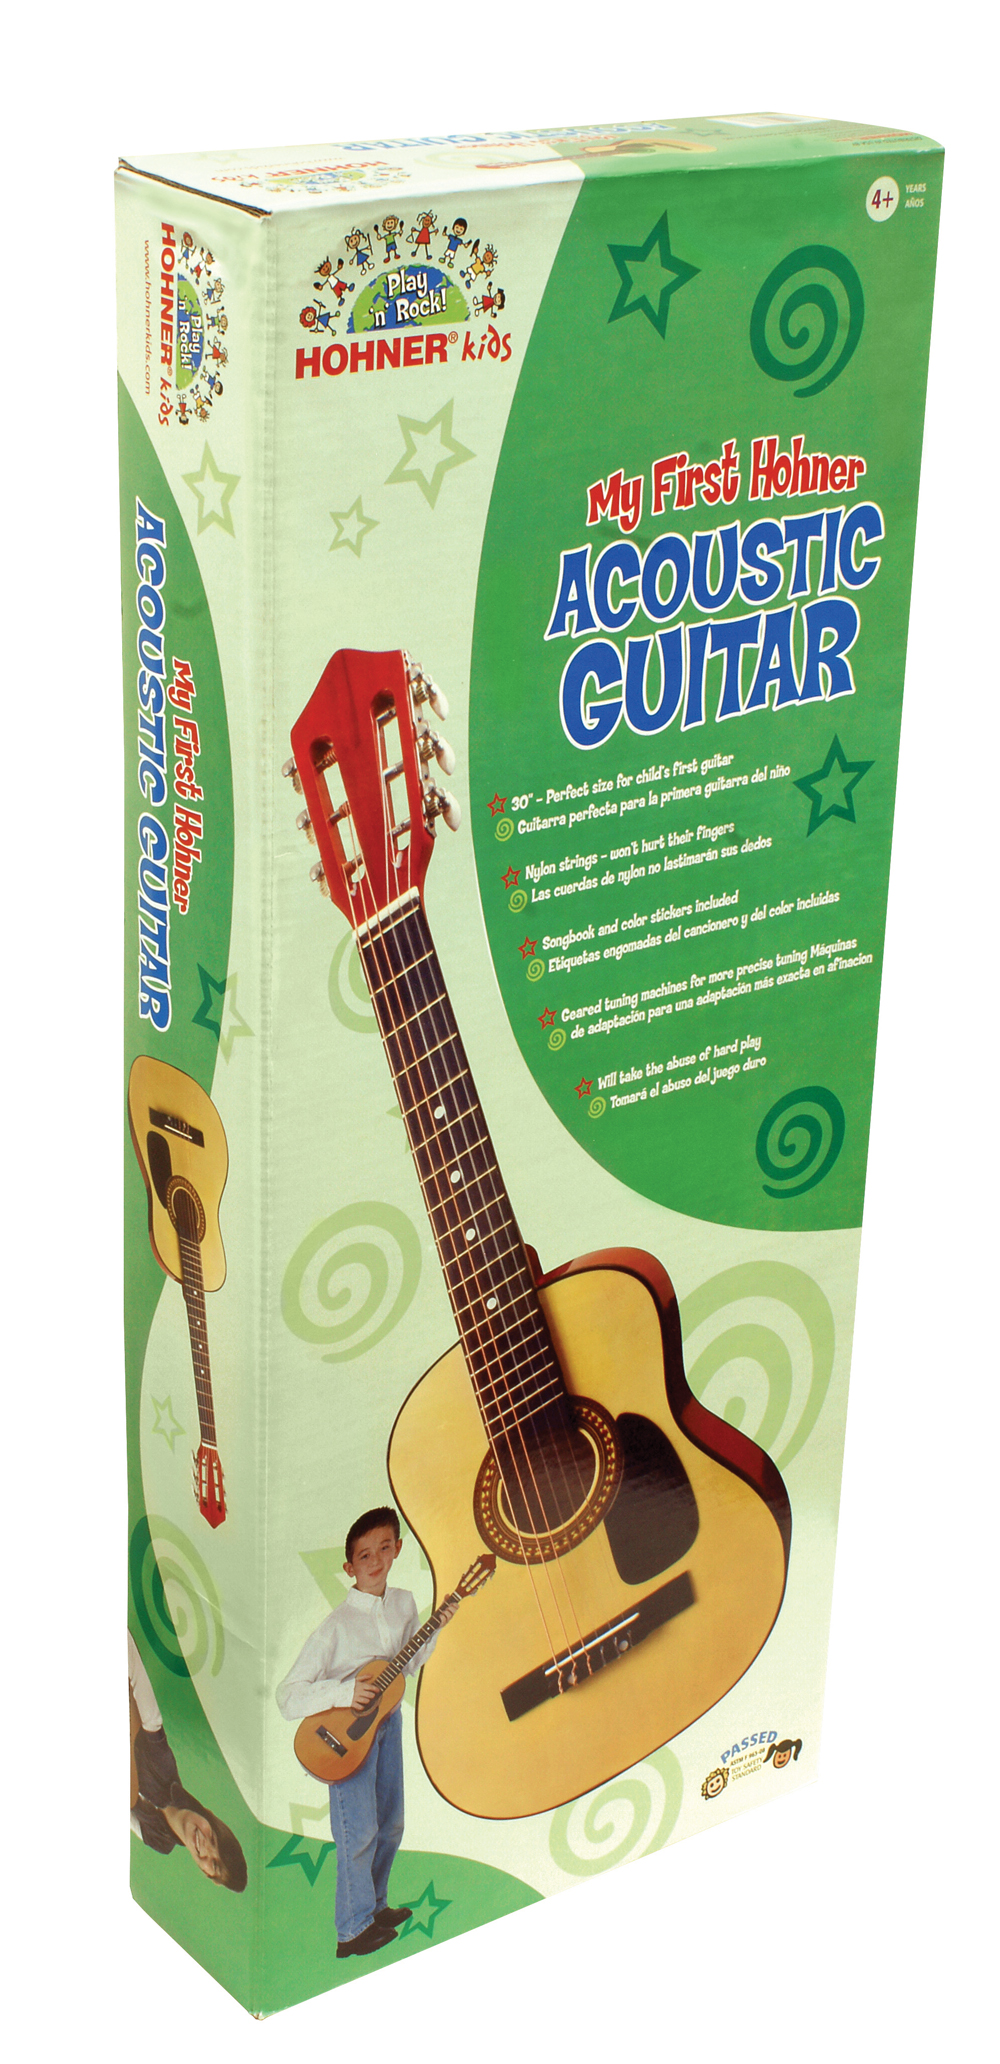 Acoustic Guitar Box